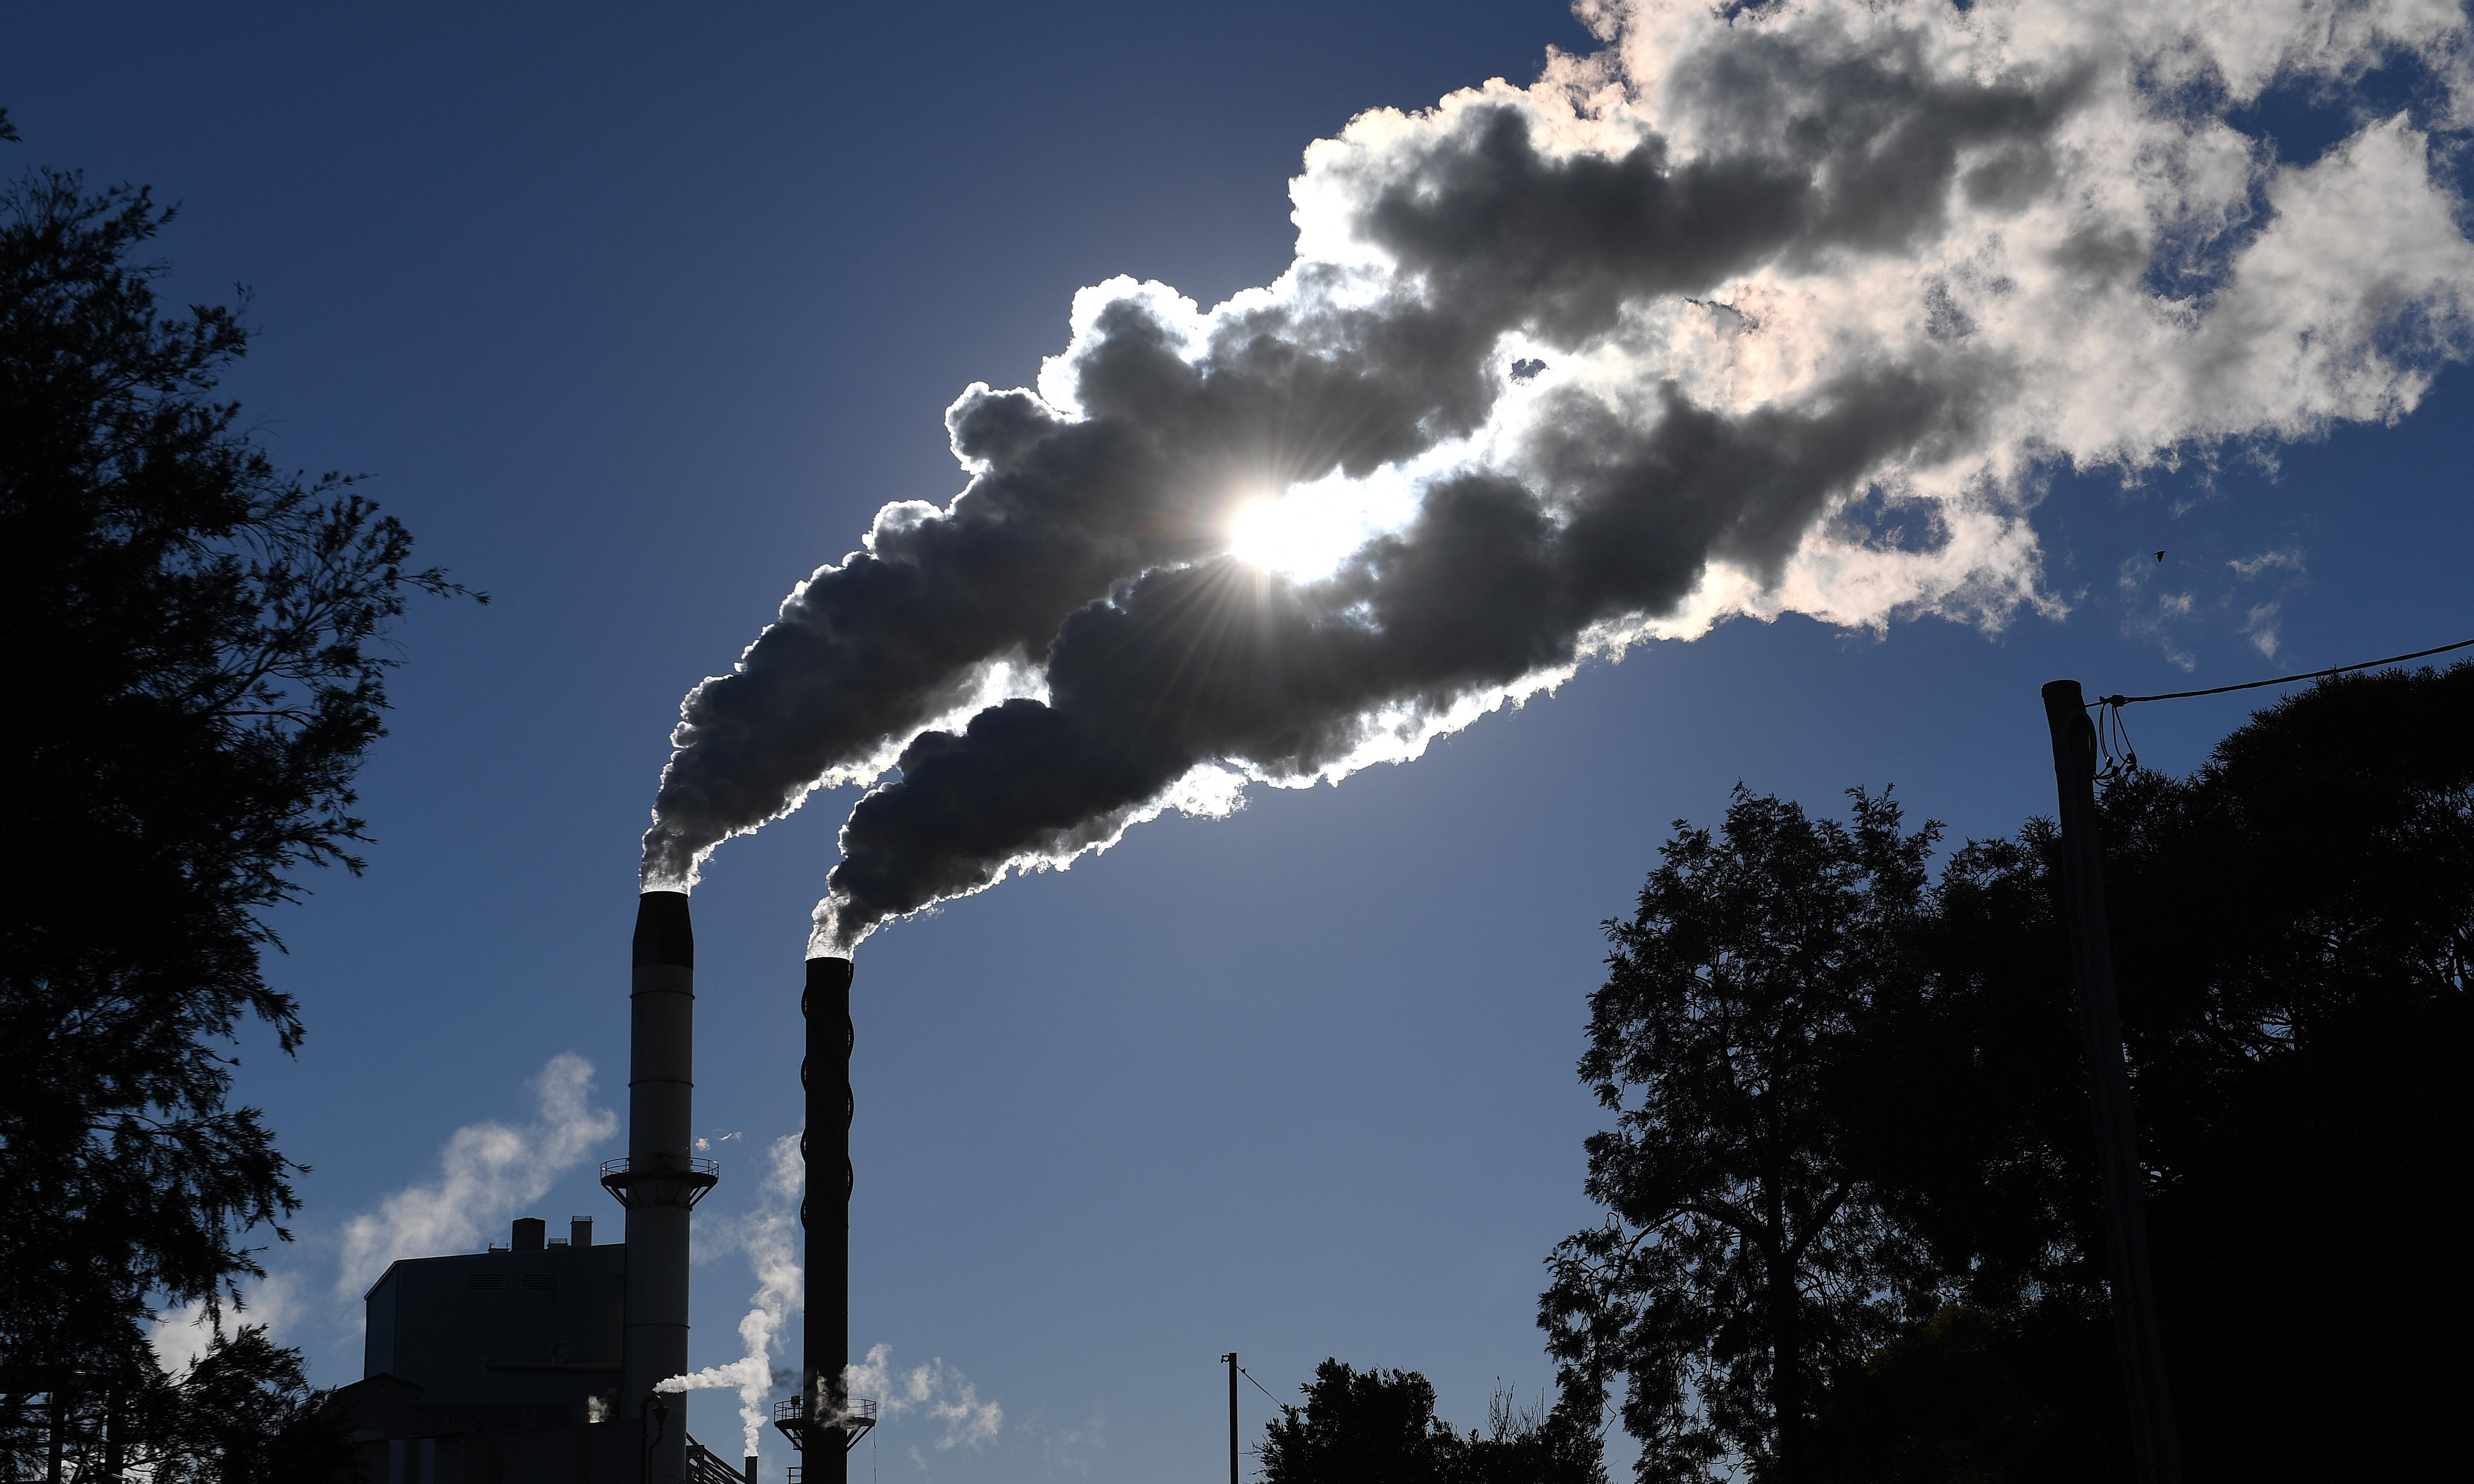 Australia's emissions reach the highest on record, driven by electricity sector